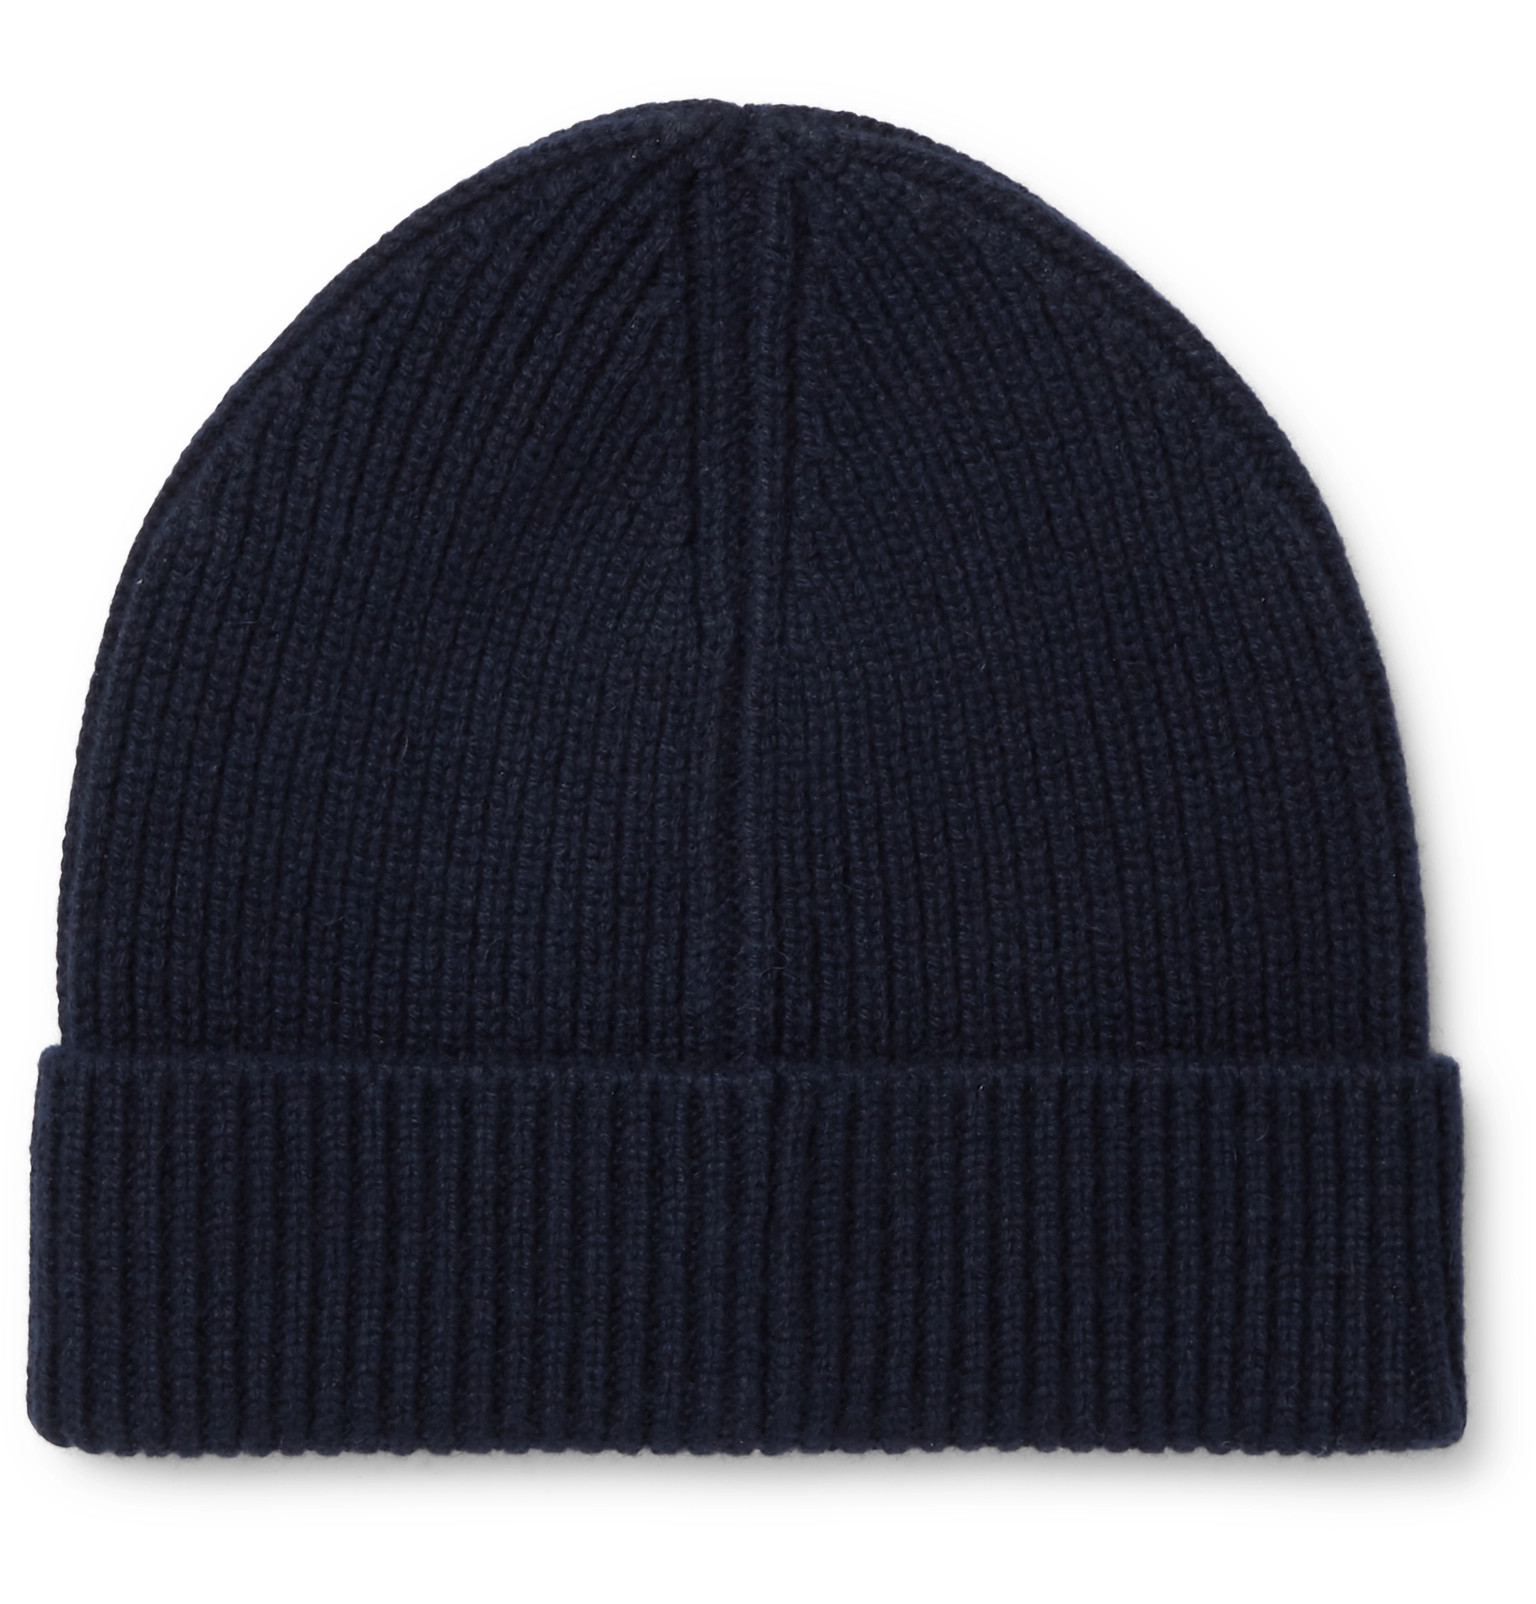 J.Crew - Ribbed Cashmere Beanie 297ef503f93a